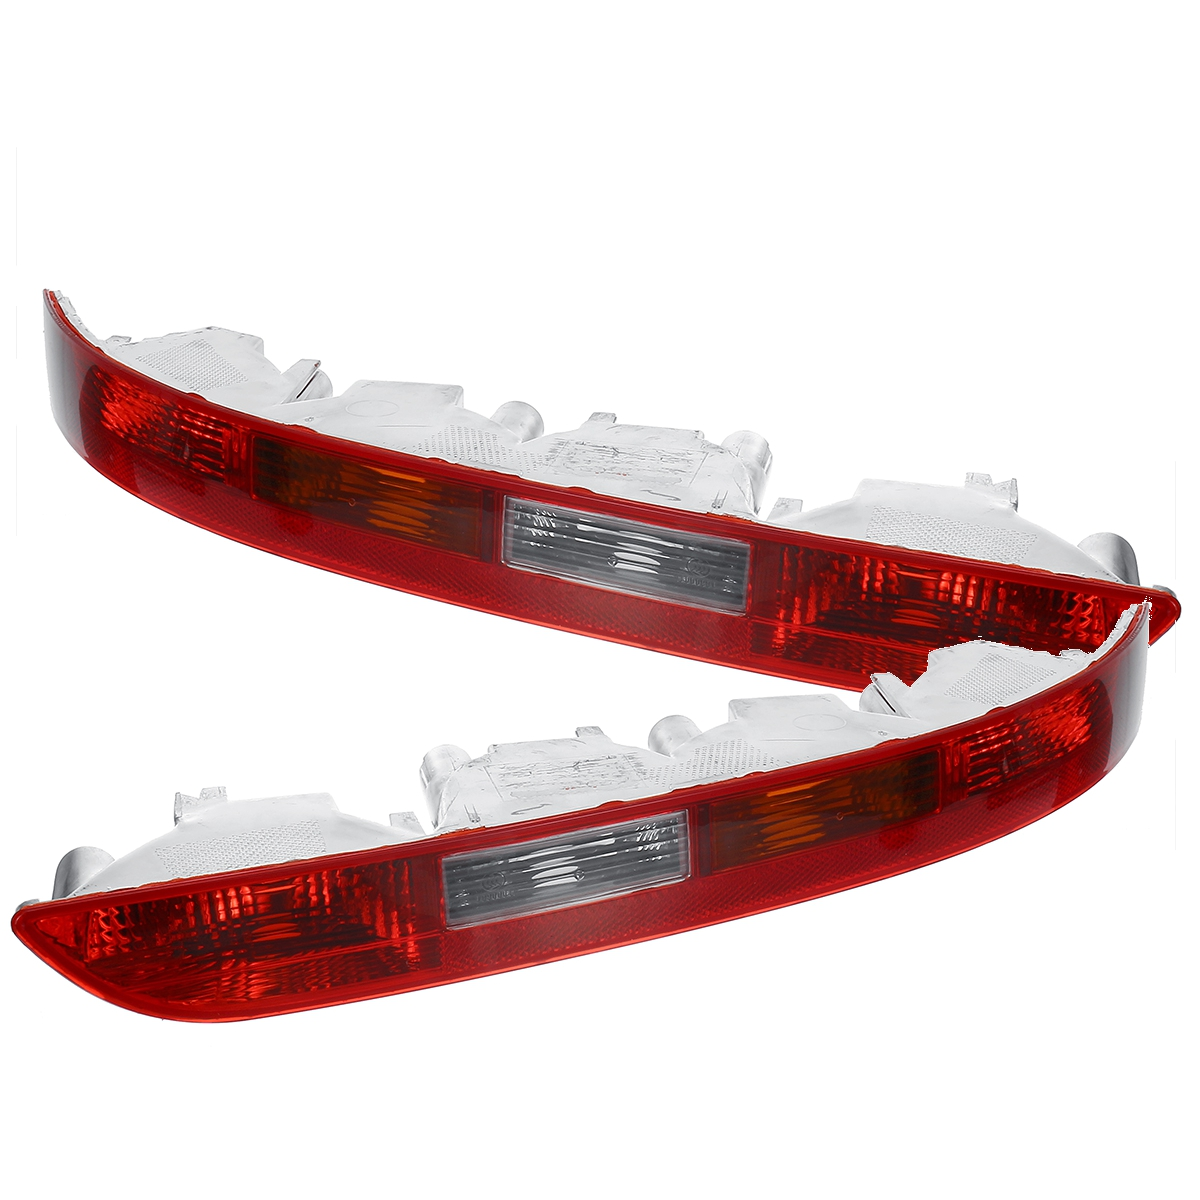 Car Taillight Rear Bumper Tail Light Cover Pair for Audi Q5 2.0T 2009-2016 8R0945096 8R0945095